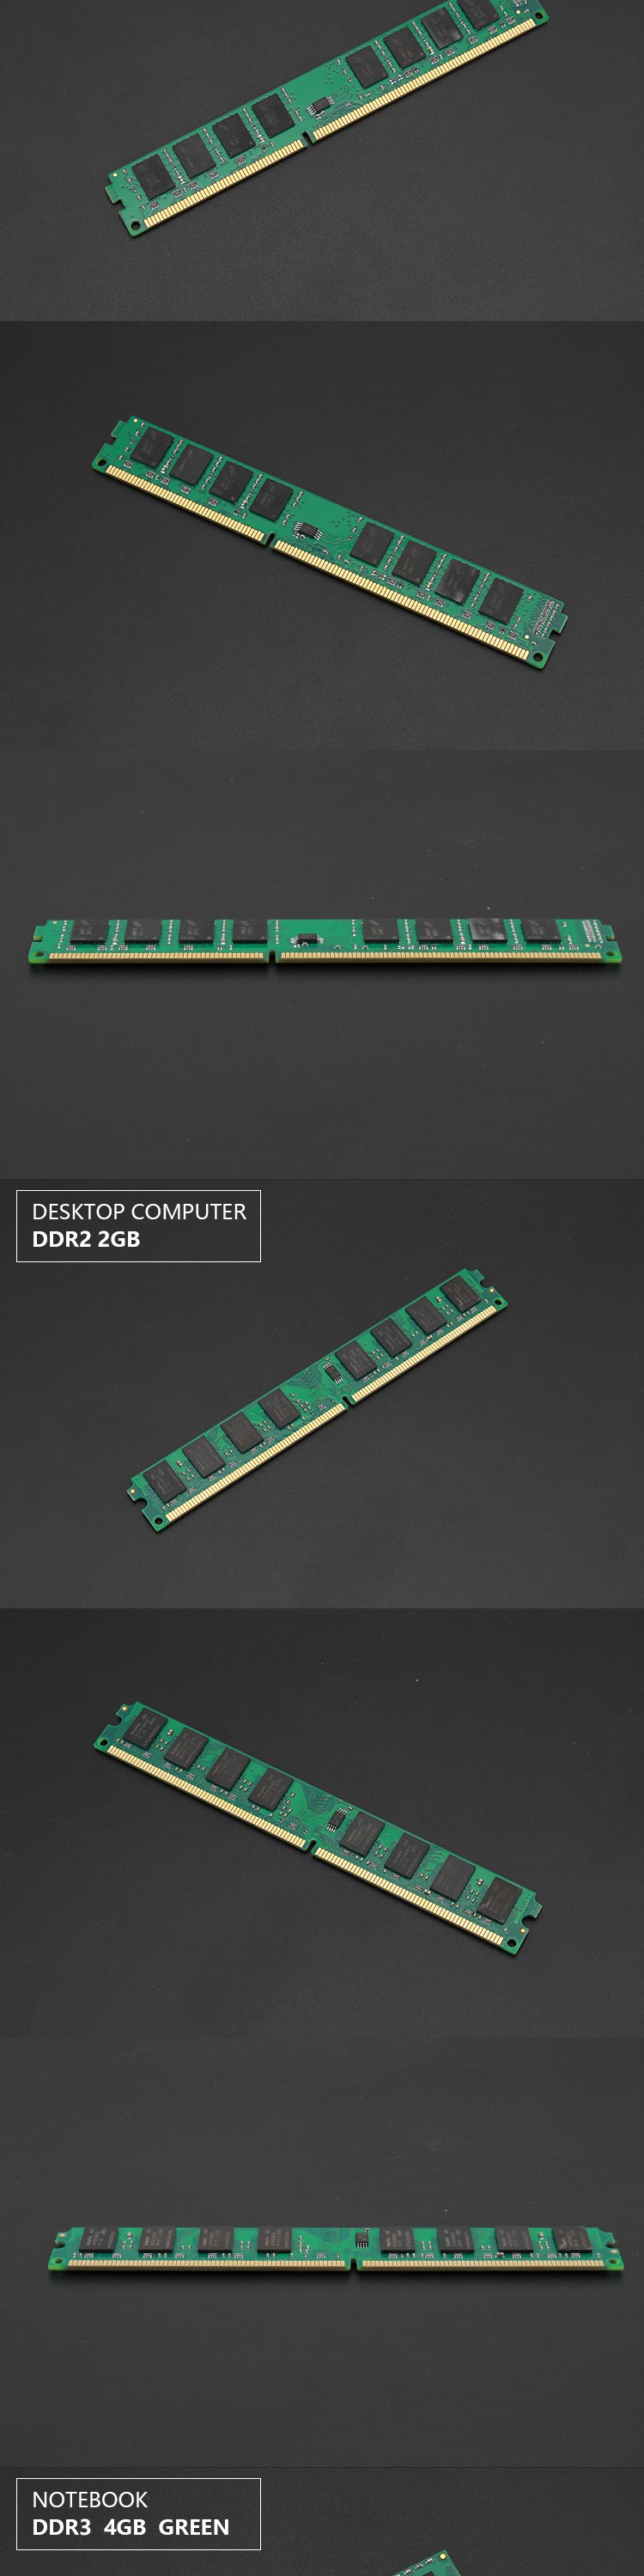 Ddr2 4gb 800mhz Pc2 6400 Laptop Ram Elpida 2gb Ddr3 Graphics Asli Jepang Mingxuanbest1 03